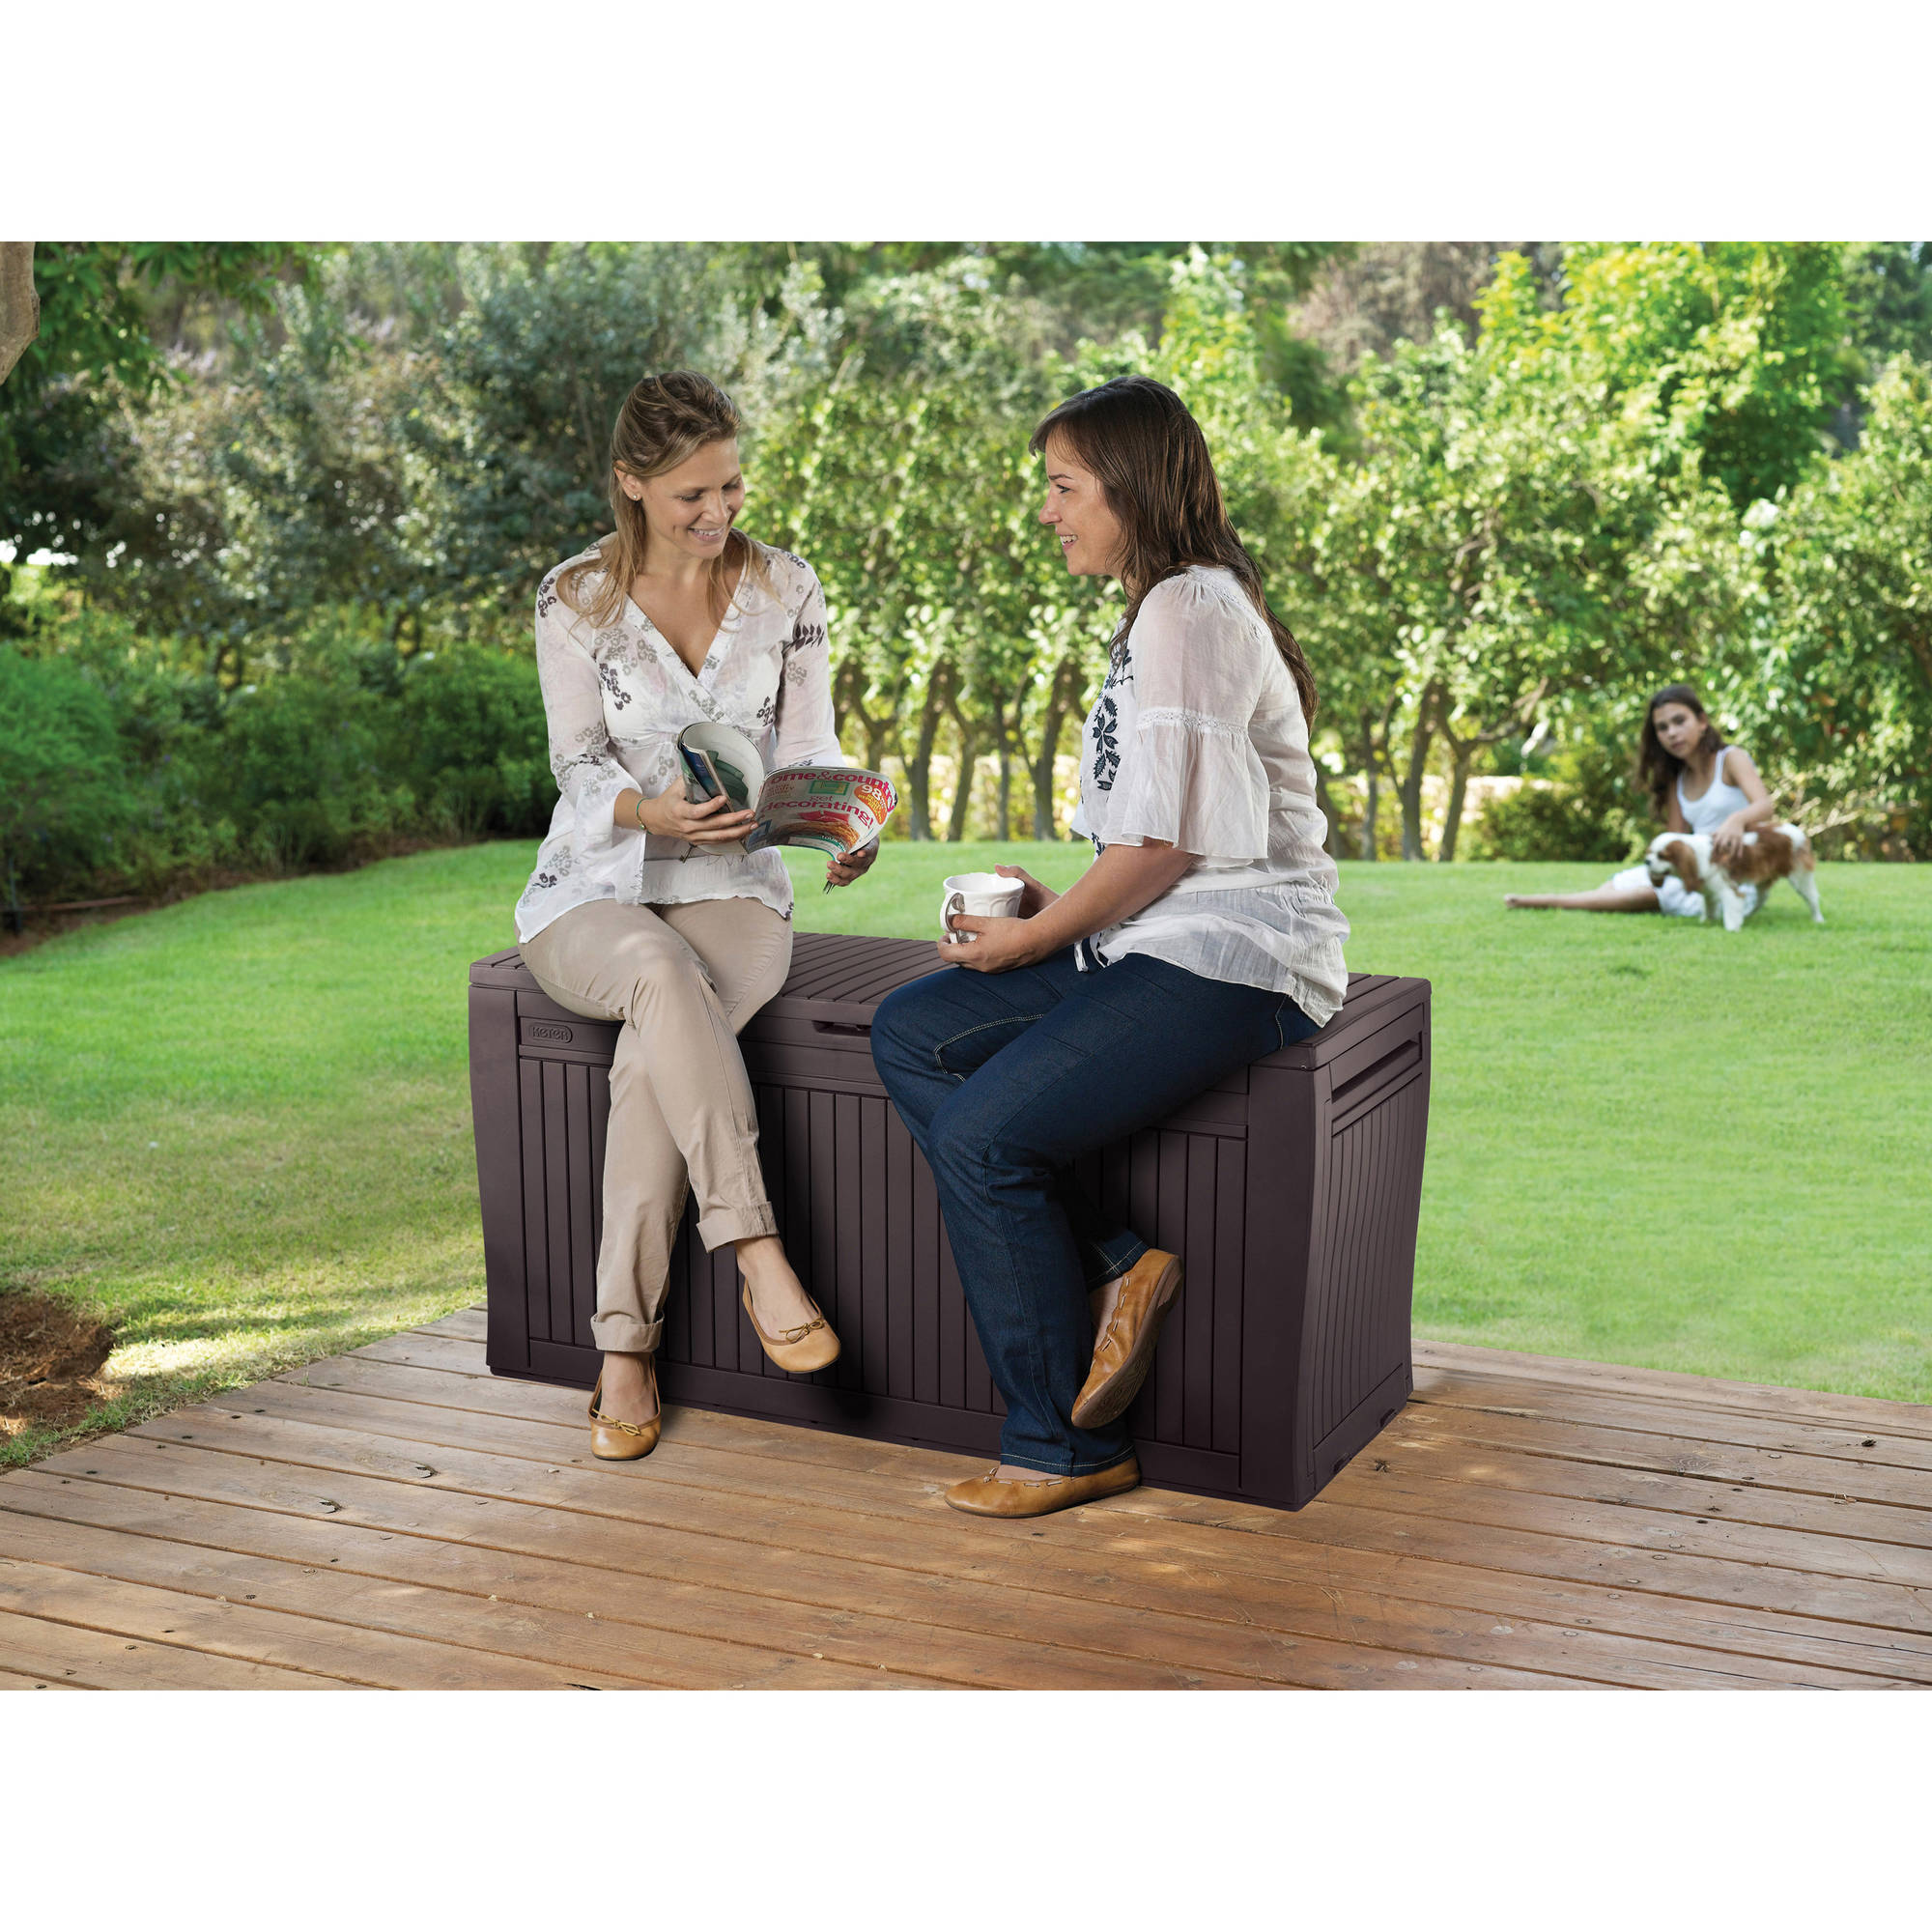 c07fa272f Keter Comfy 71-Gal Outdoor Deck Box, Espresso Brown - Walmart.com